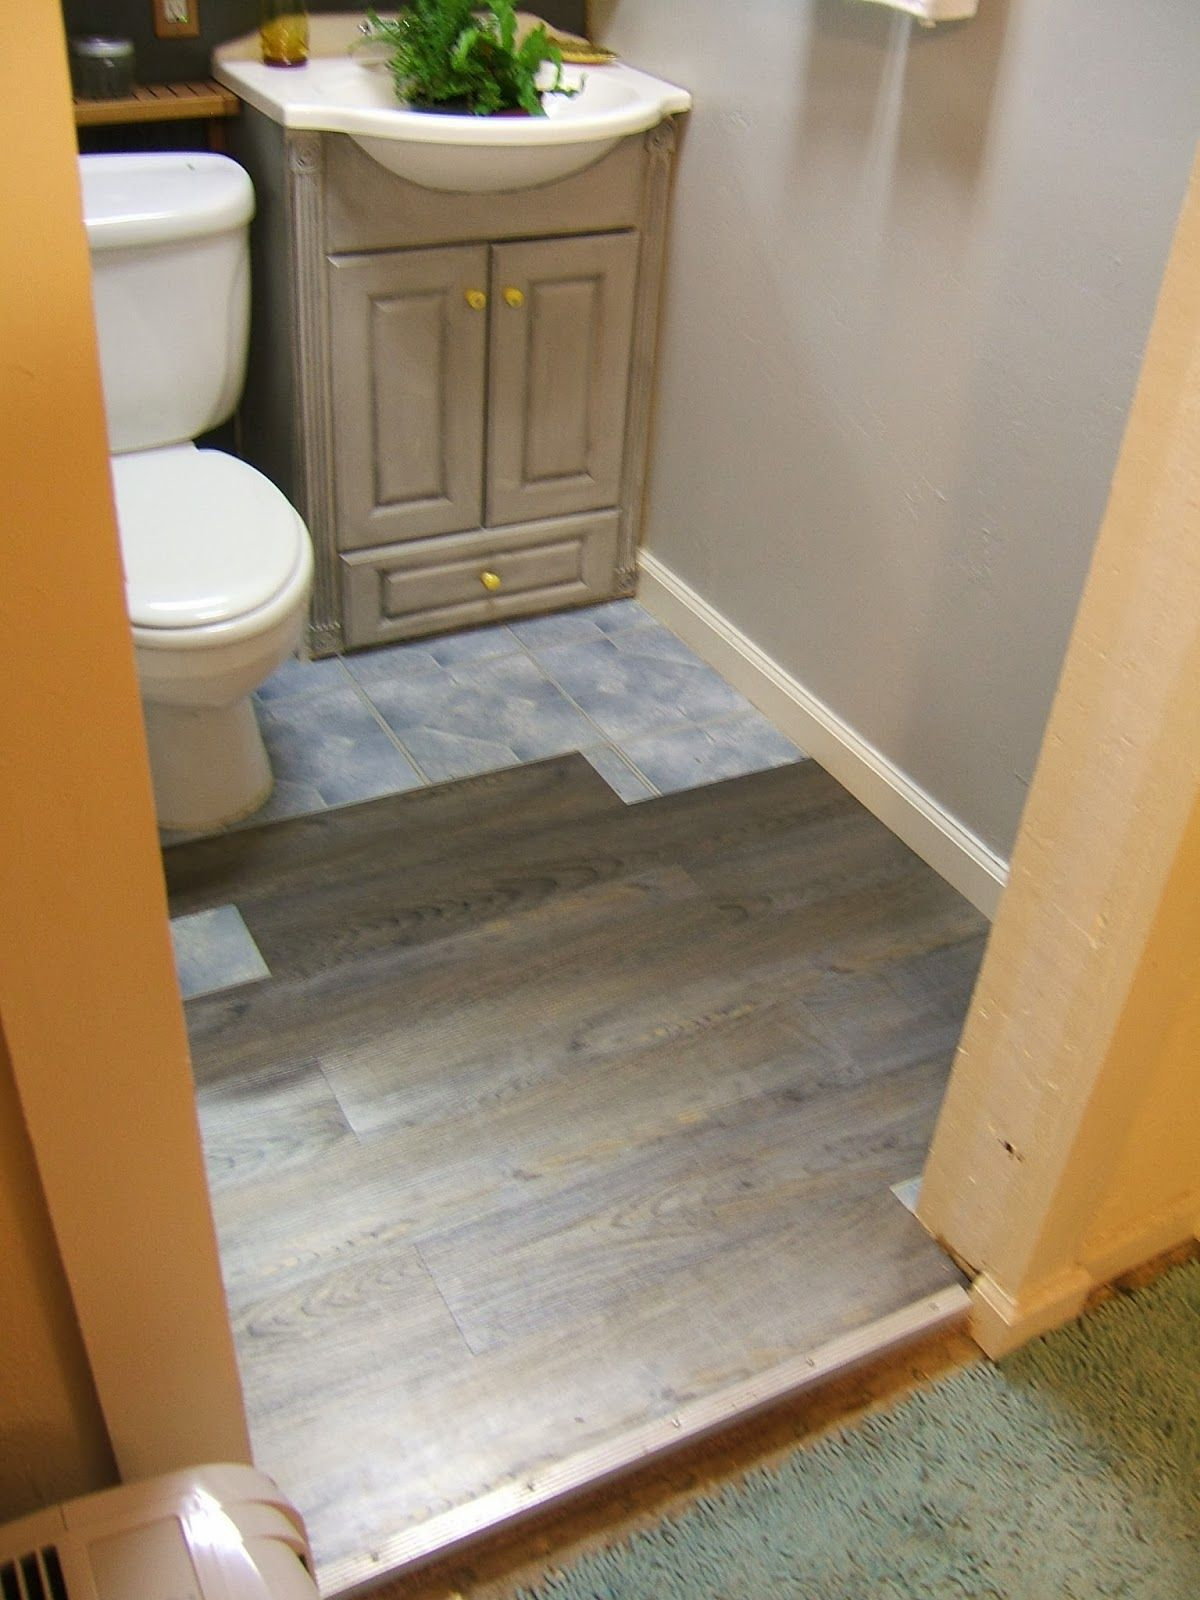 Startling Groutable Peel And Stick Floor Tiles Peel and